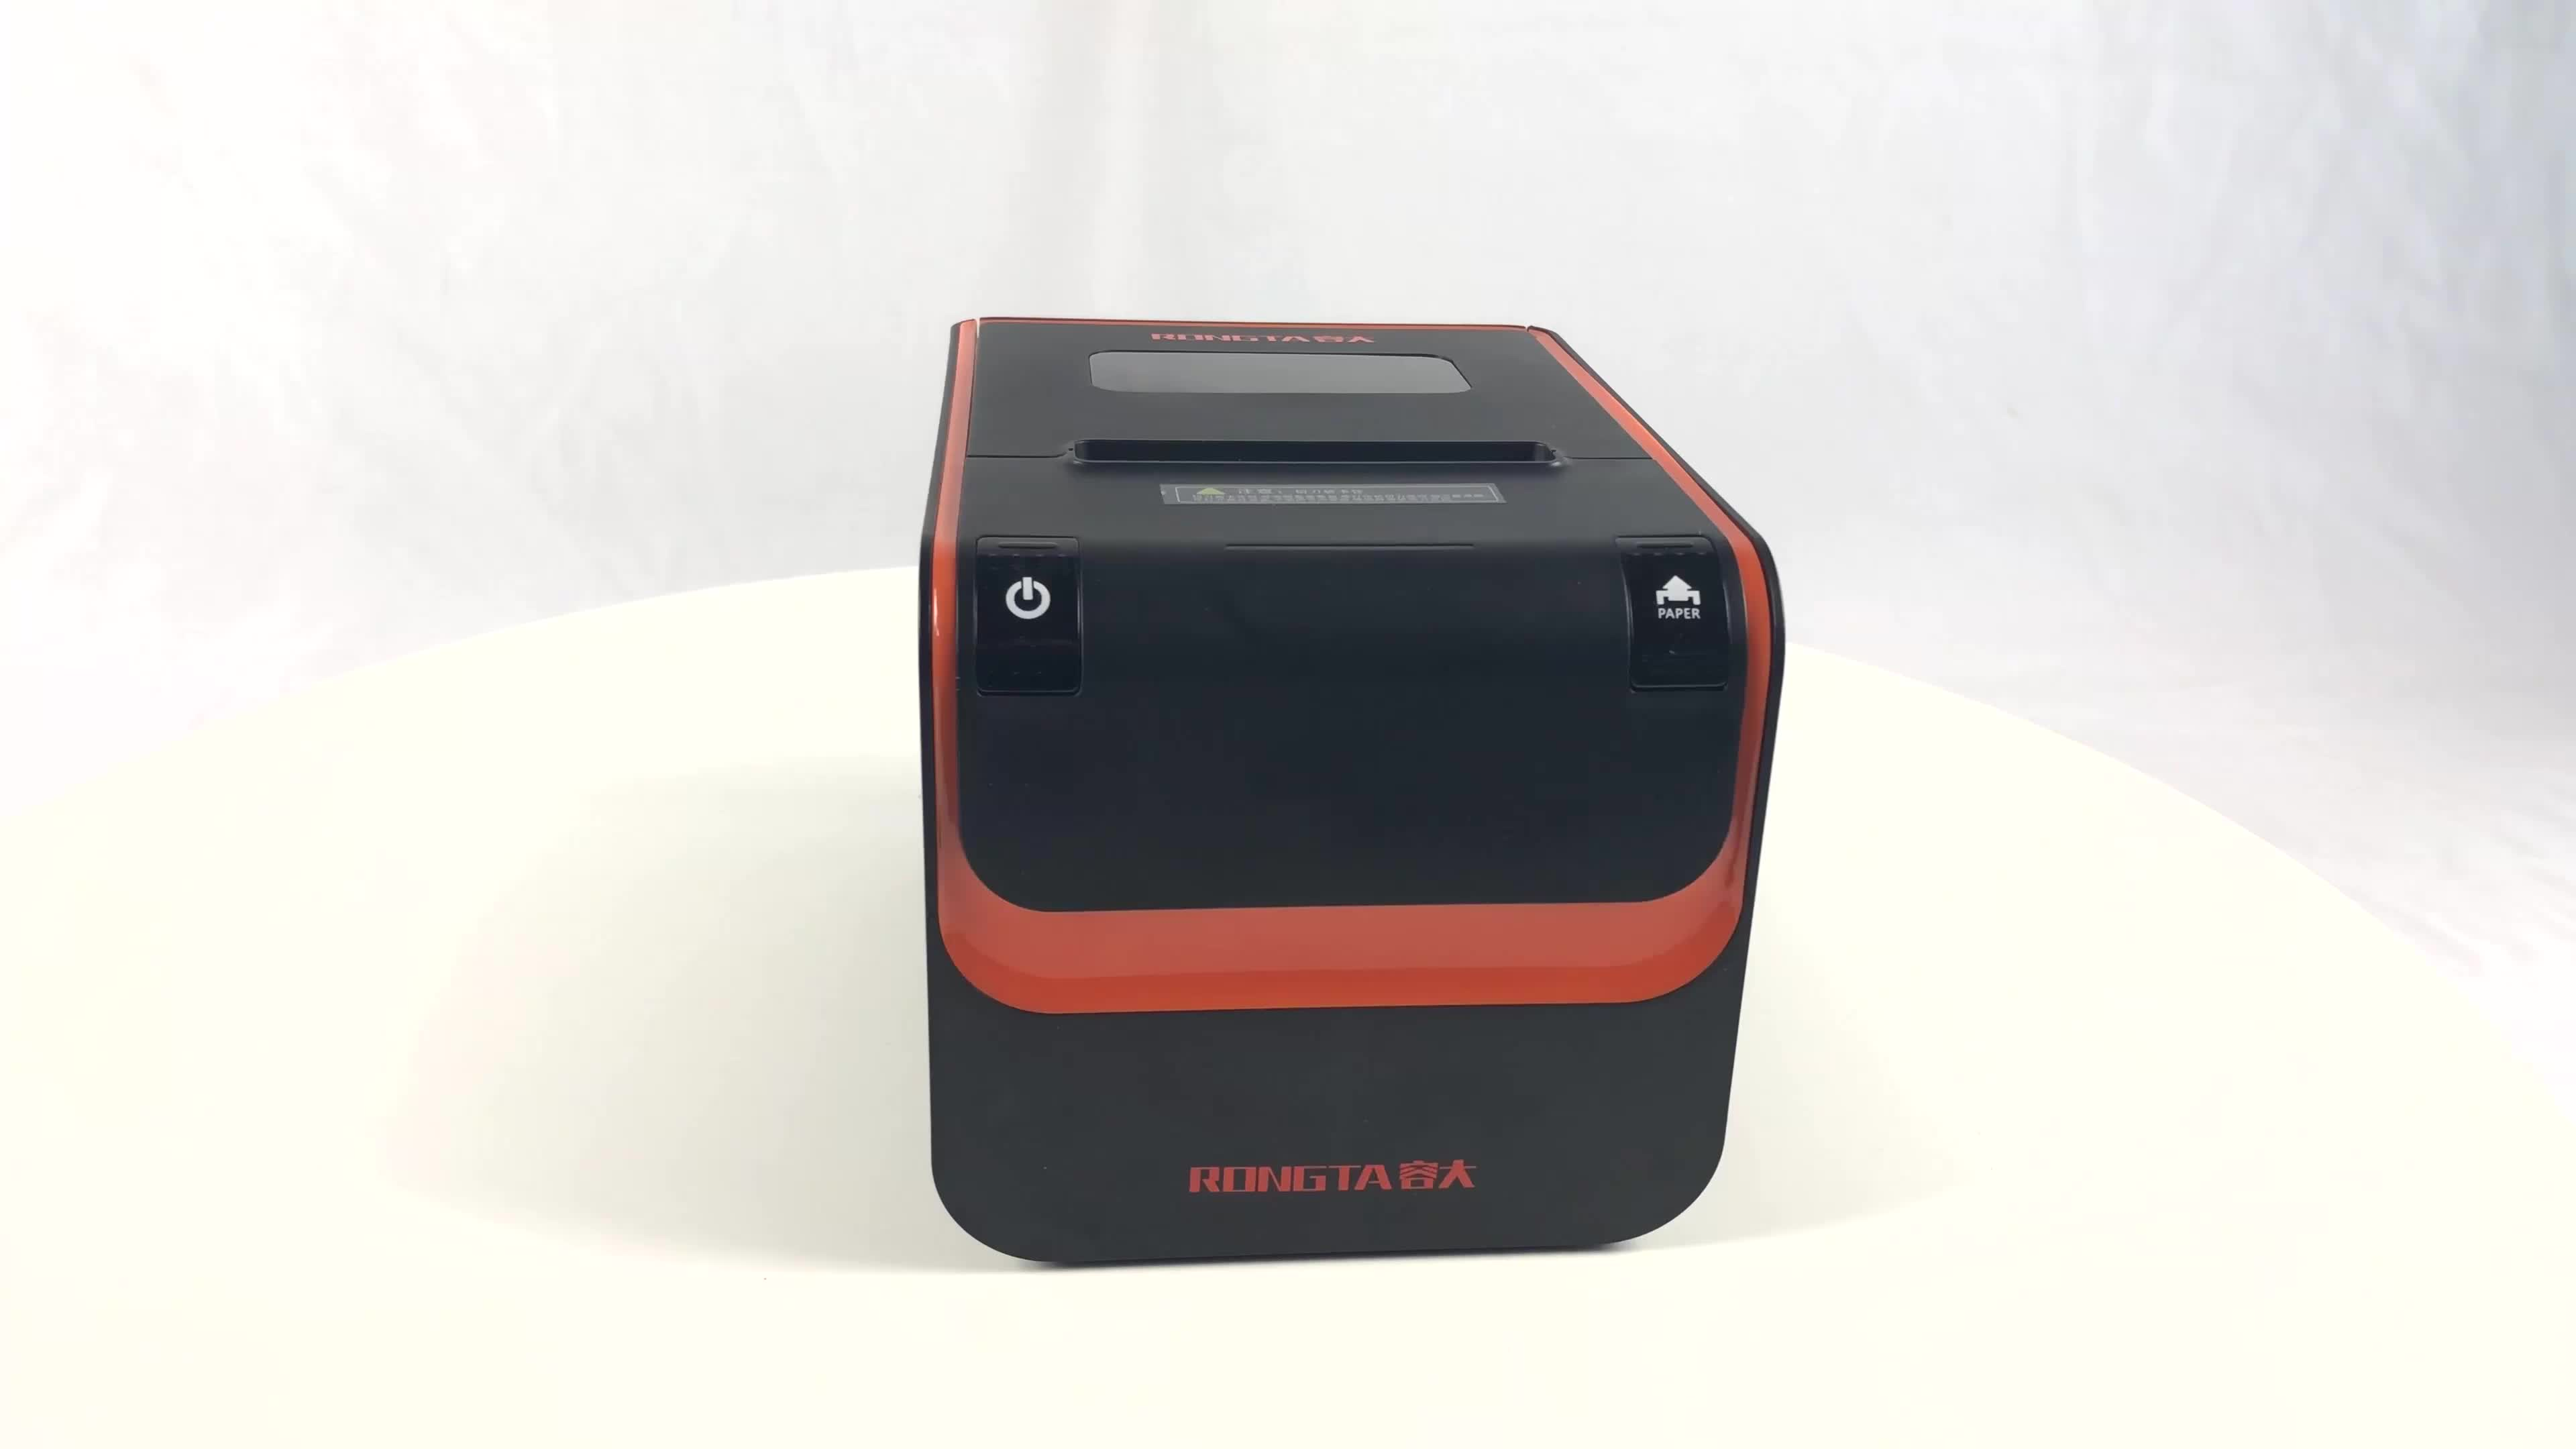 Cost-efficient 80mm POS printer thermal receipt printer RP332